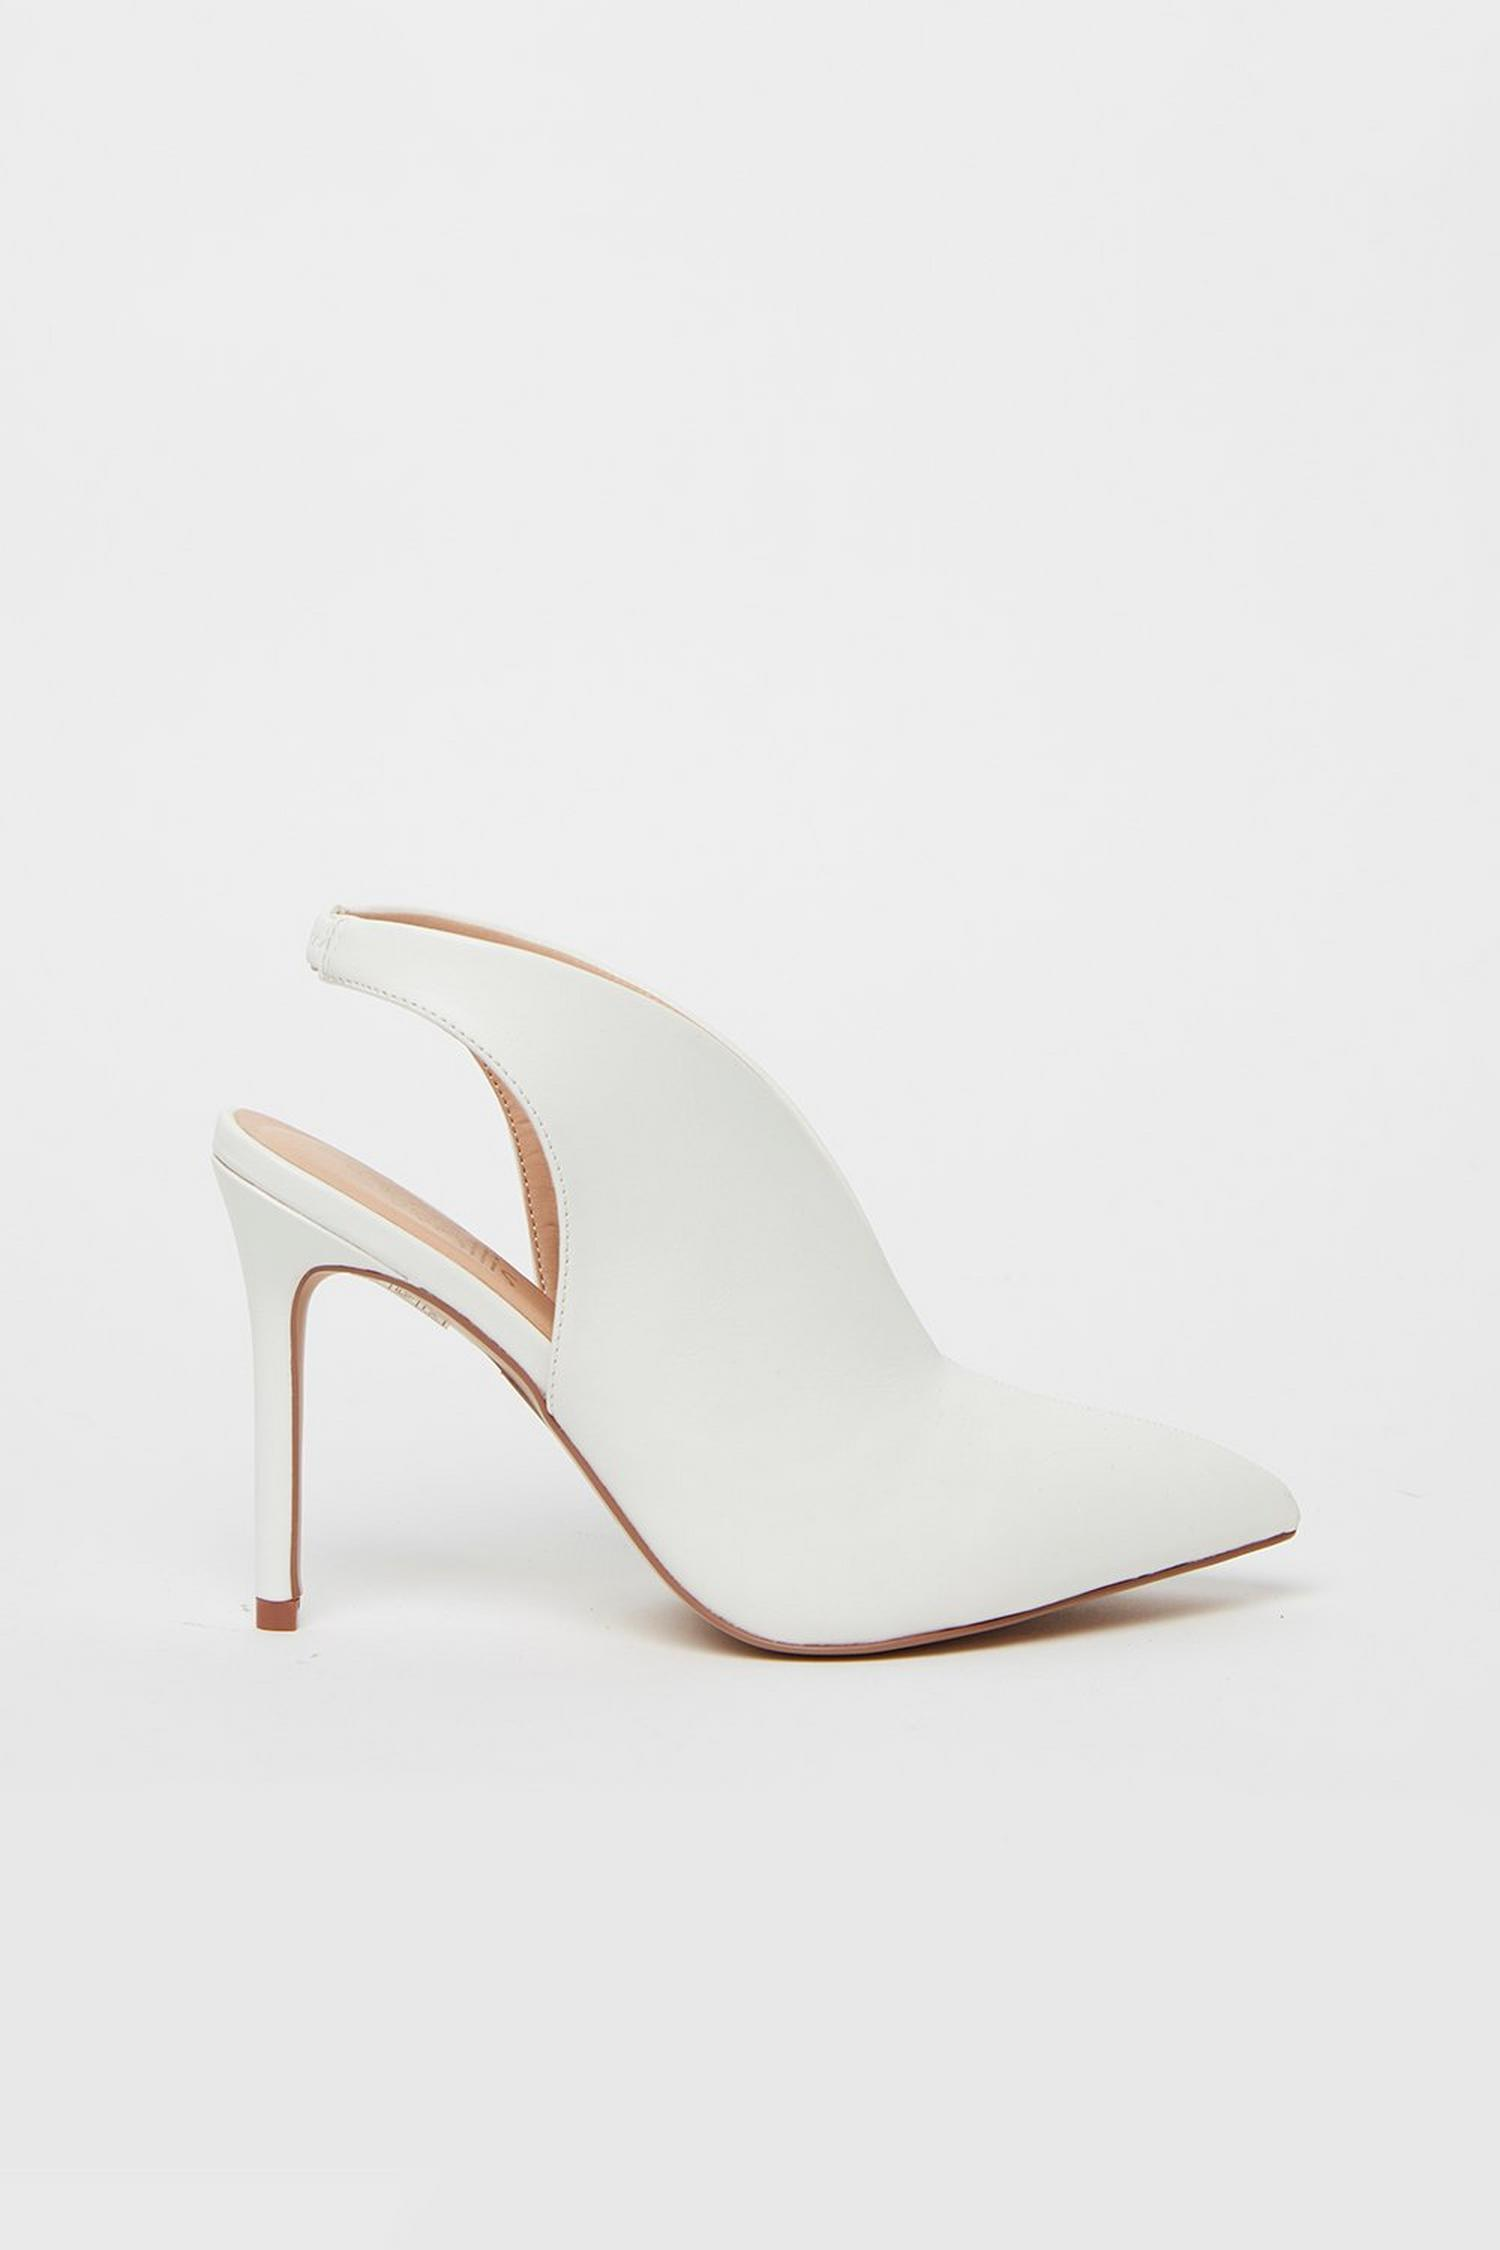 173 White Slingback Shoe Boot image number 1